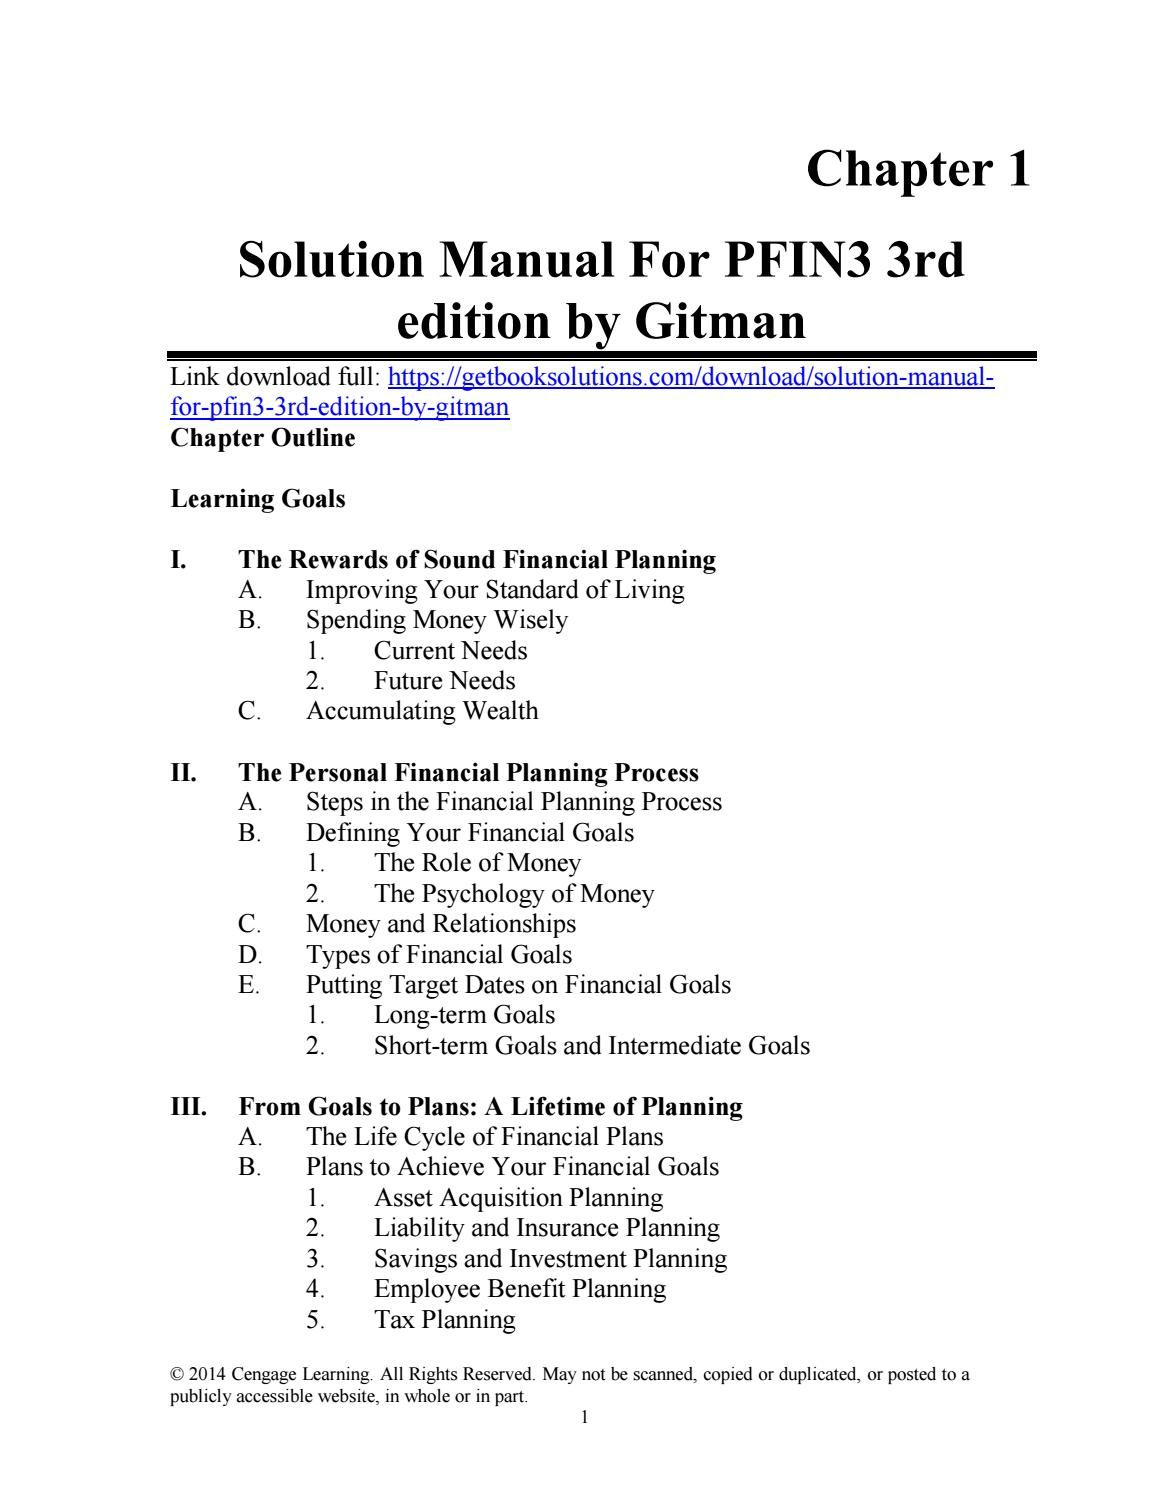 Solution manual for principles of managerial finance 14th edition.